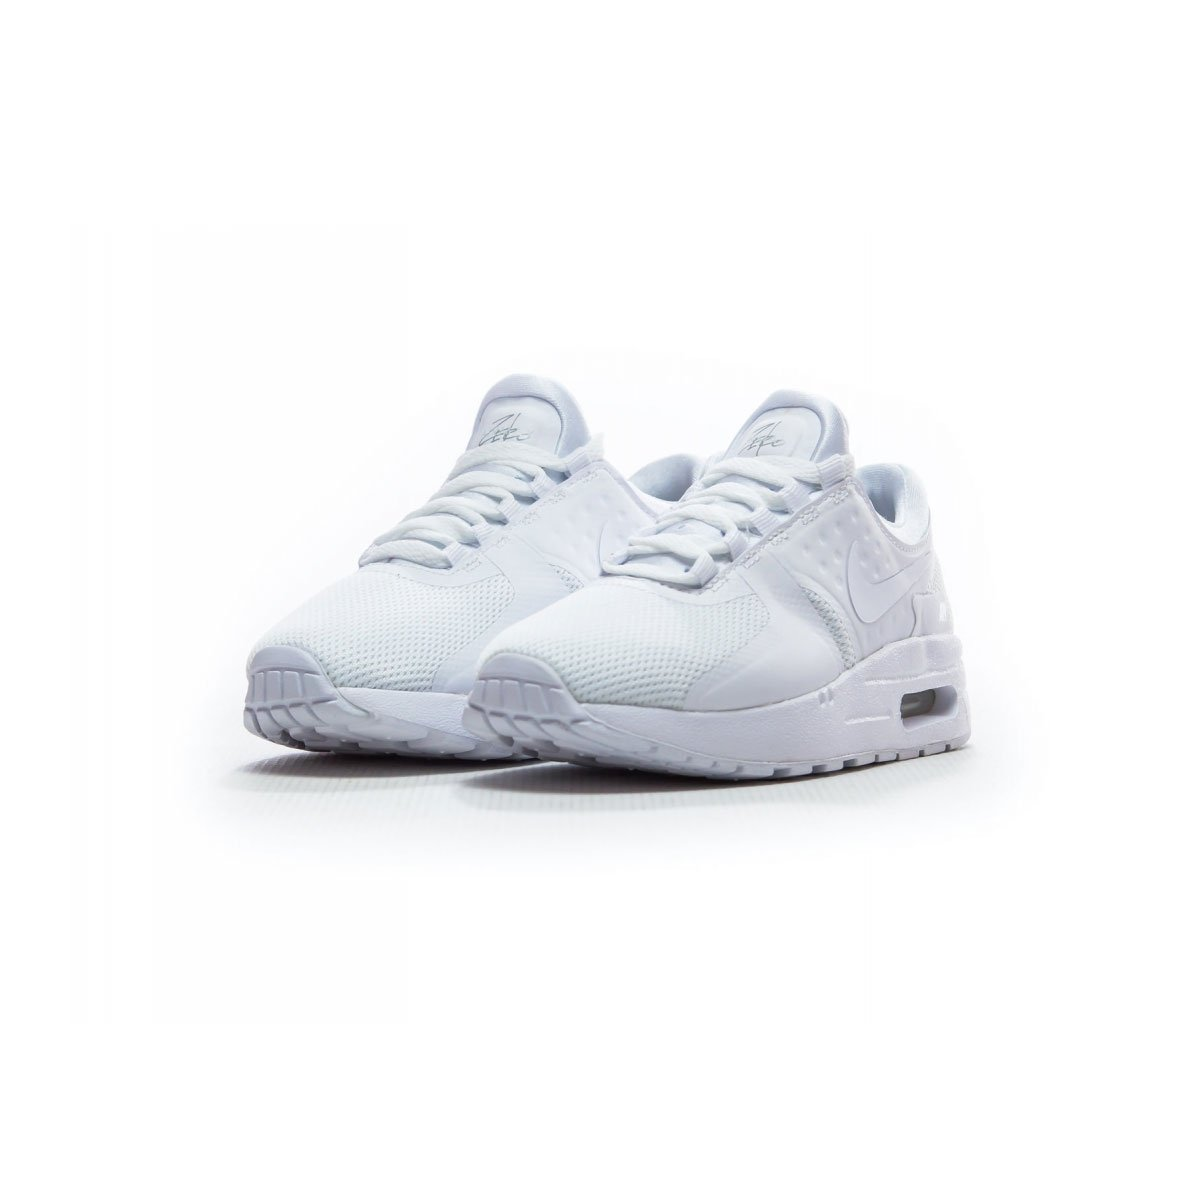 Nike Kids Air Max Zero Essential PS White 881226-100 (Size: 2.5Y) by Nike (Image #4)